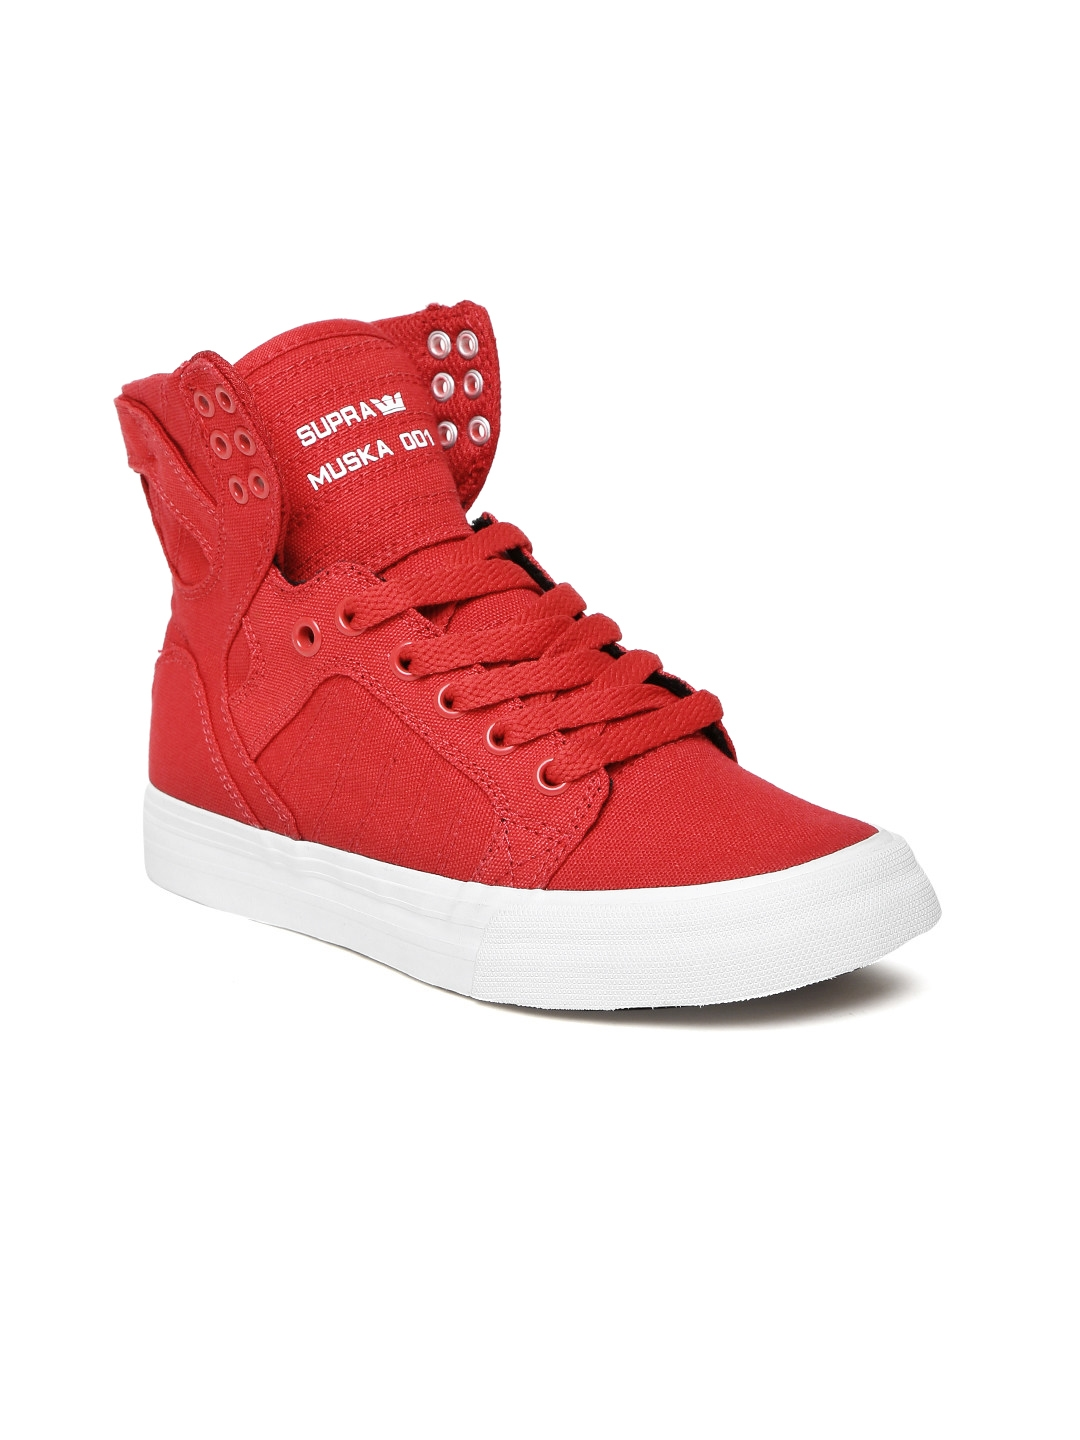 70884817a8b0 Buy Supra Women Red Solid SKYTOP D High Top Skate Shoes - Casual ...